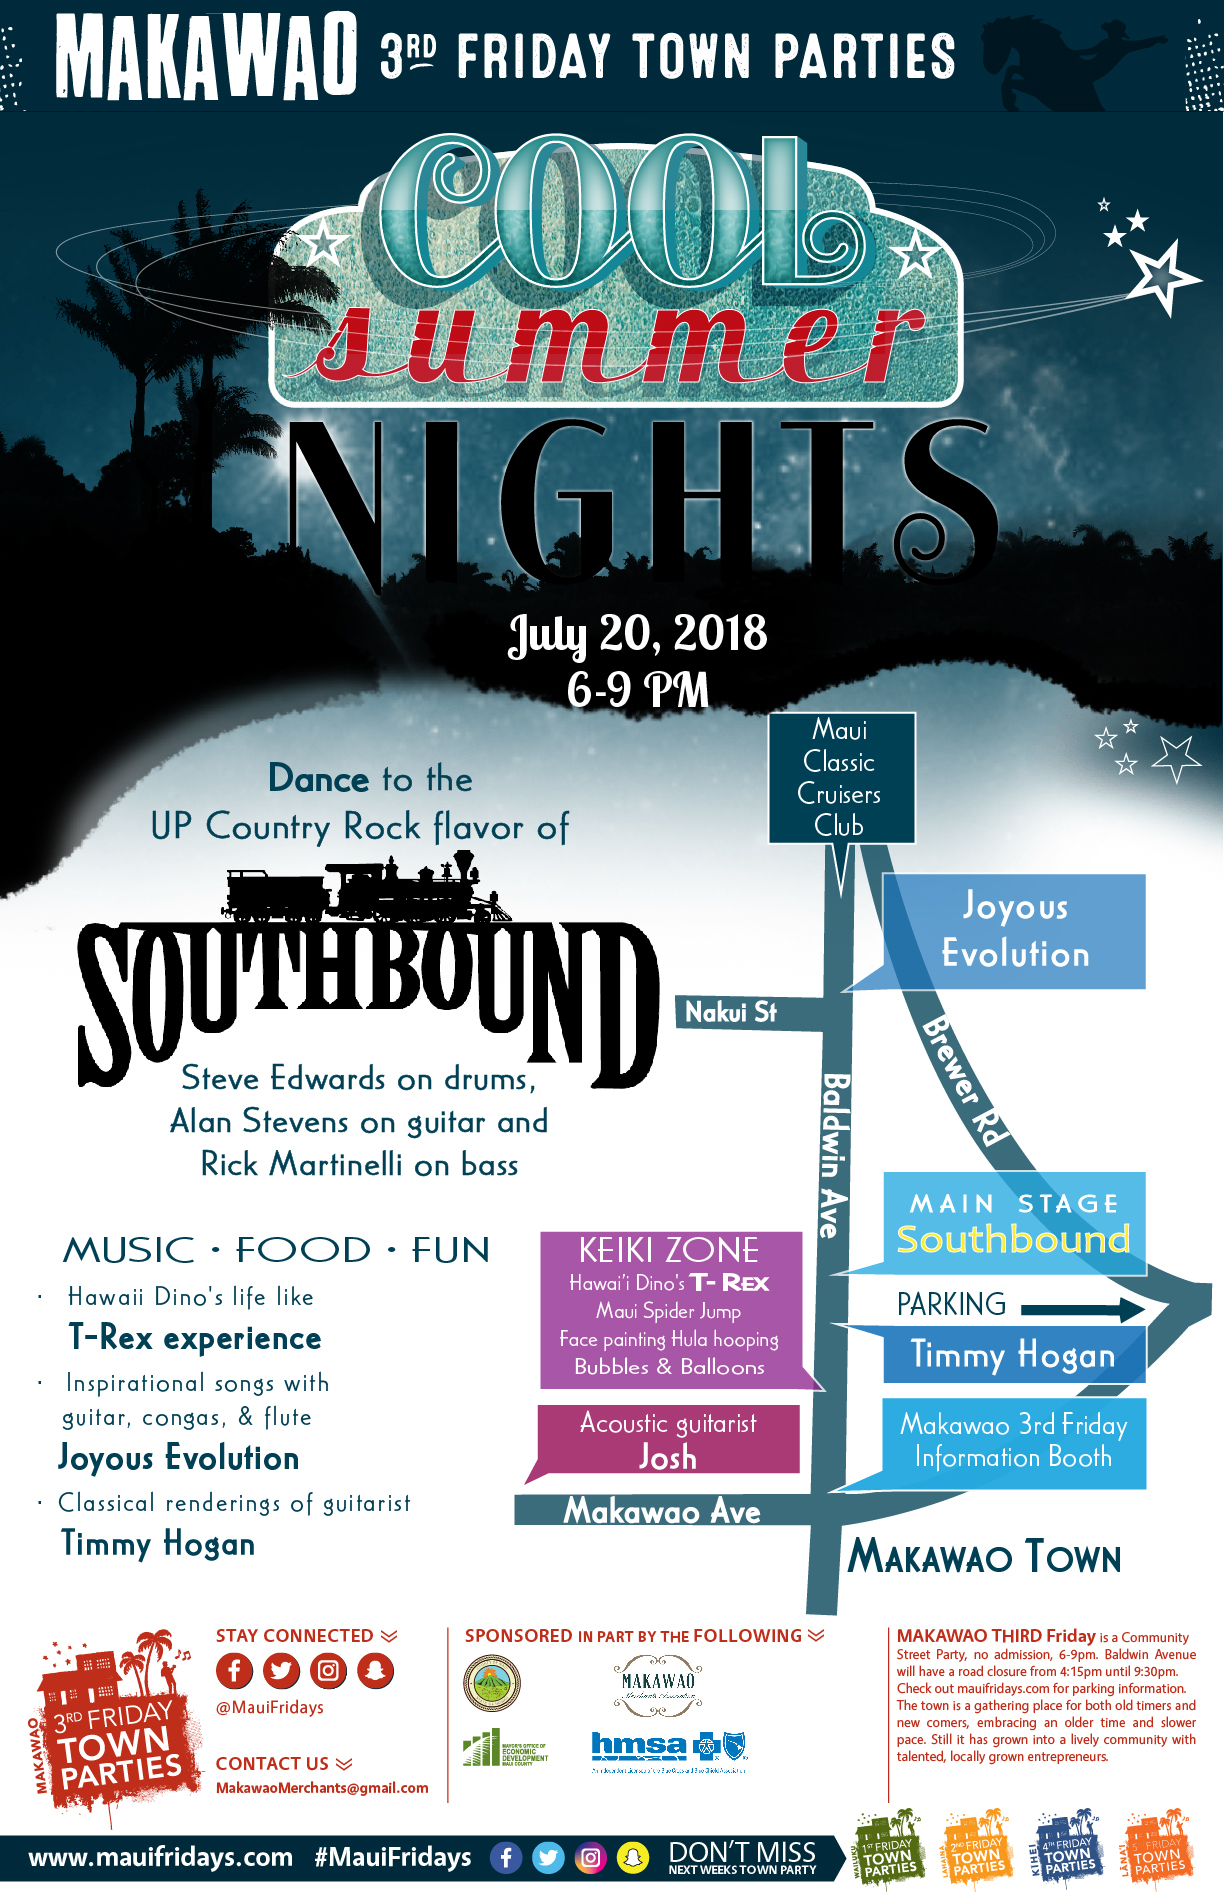 Makawao Third Friday Presents Cool Summer Nights